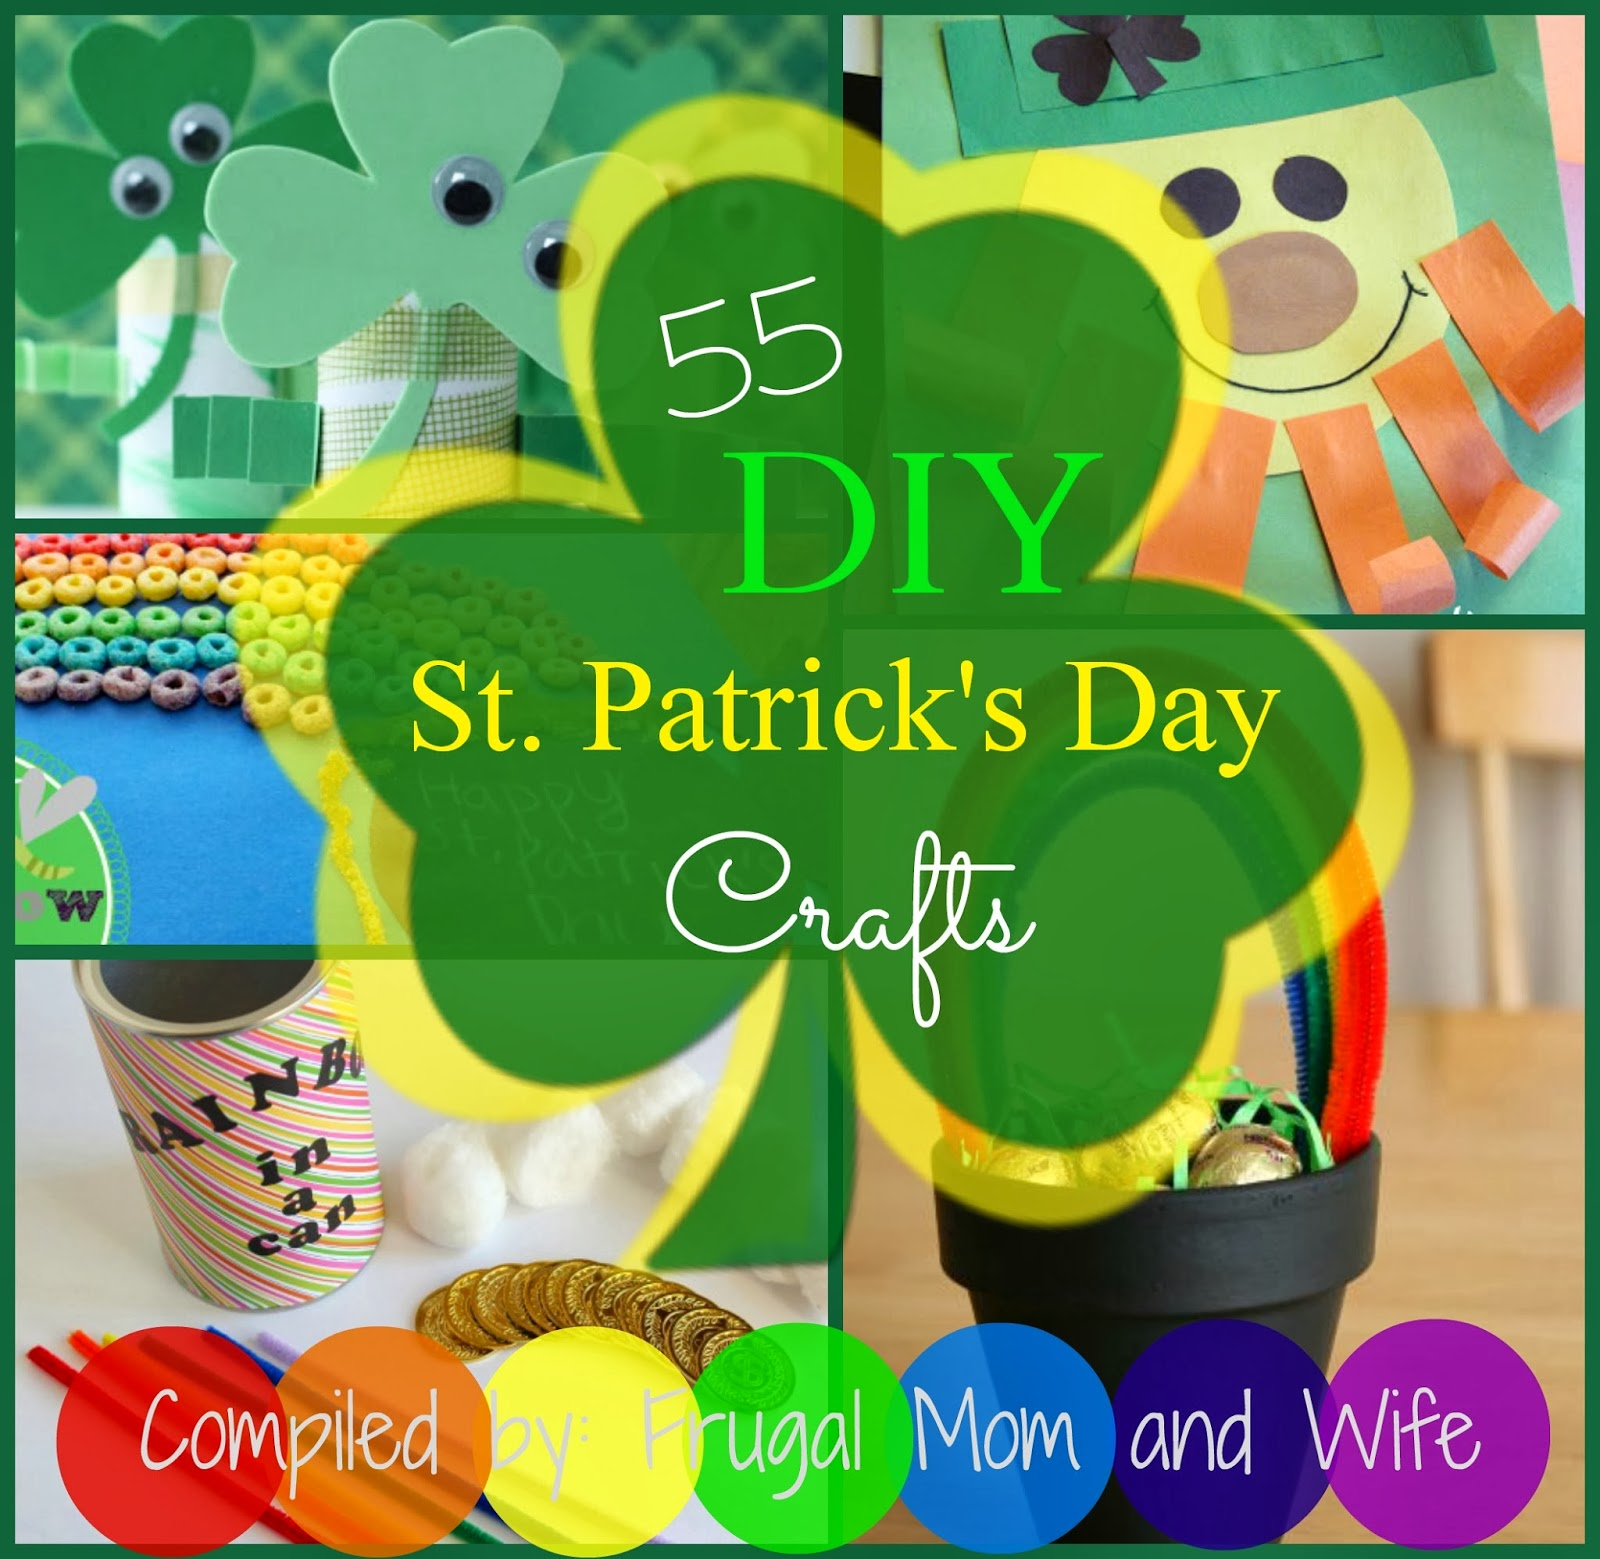 Frugal mom and wife 55 diy st patricks day crafts 55 diy st patricks day crafts solutioingenieria Gallery